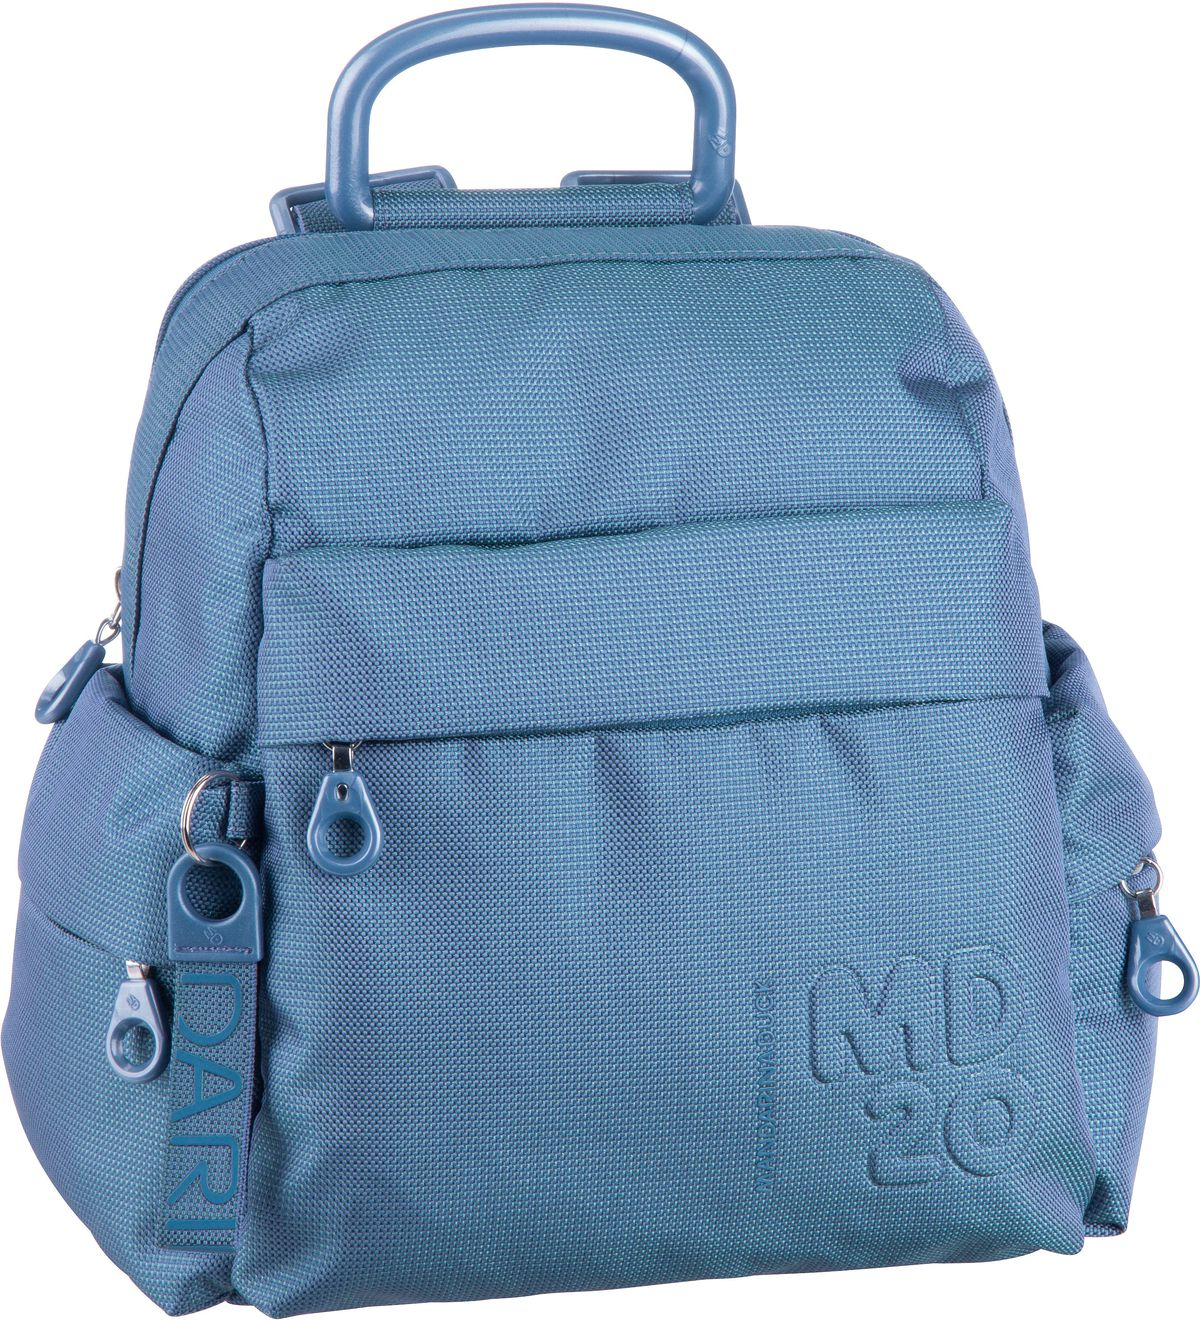 Rucksack / Daypack MD20 Small Backpack QMTT1 Moonlight Blue